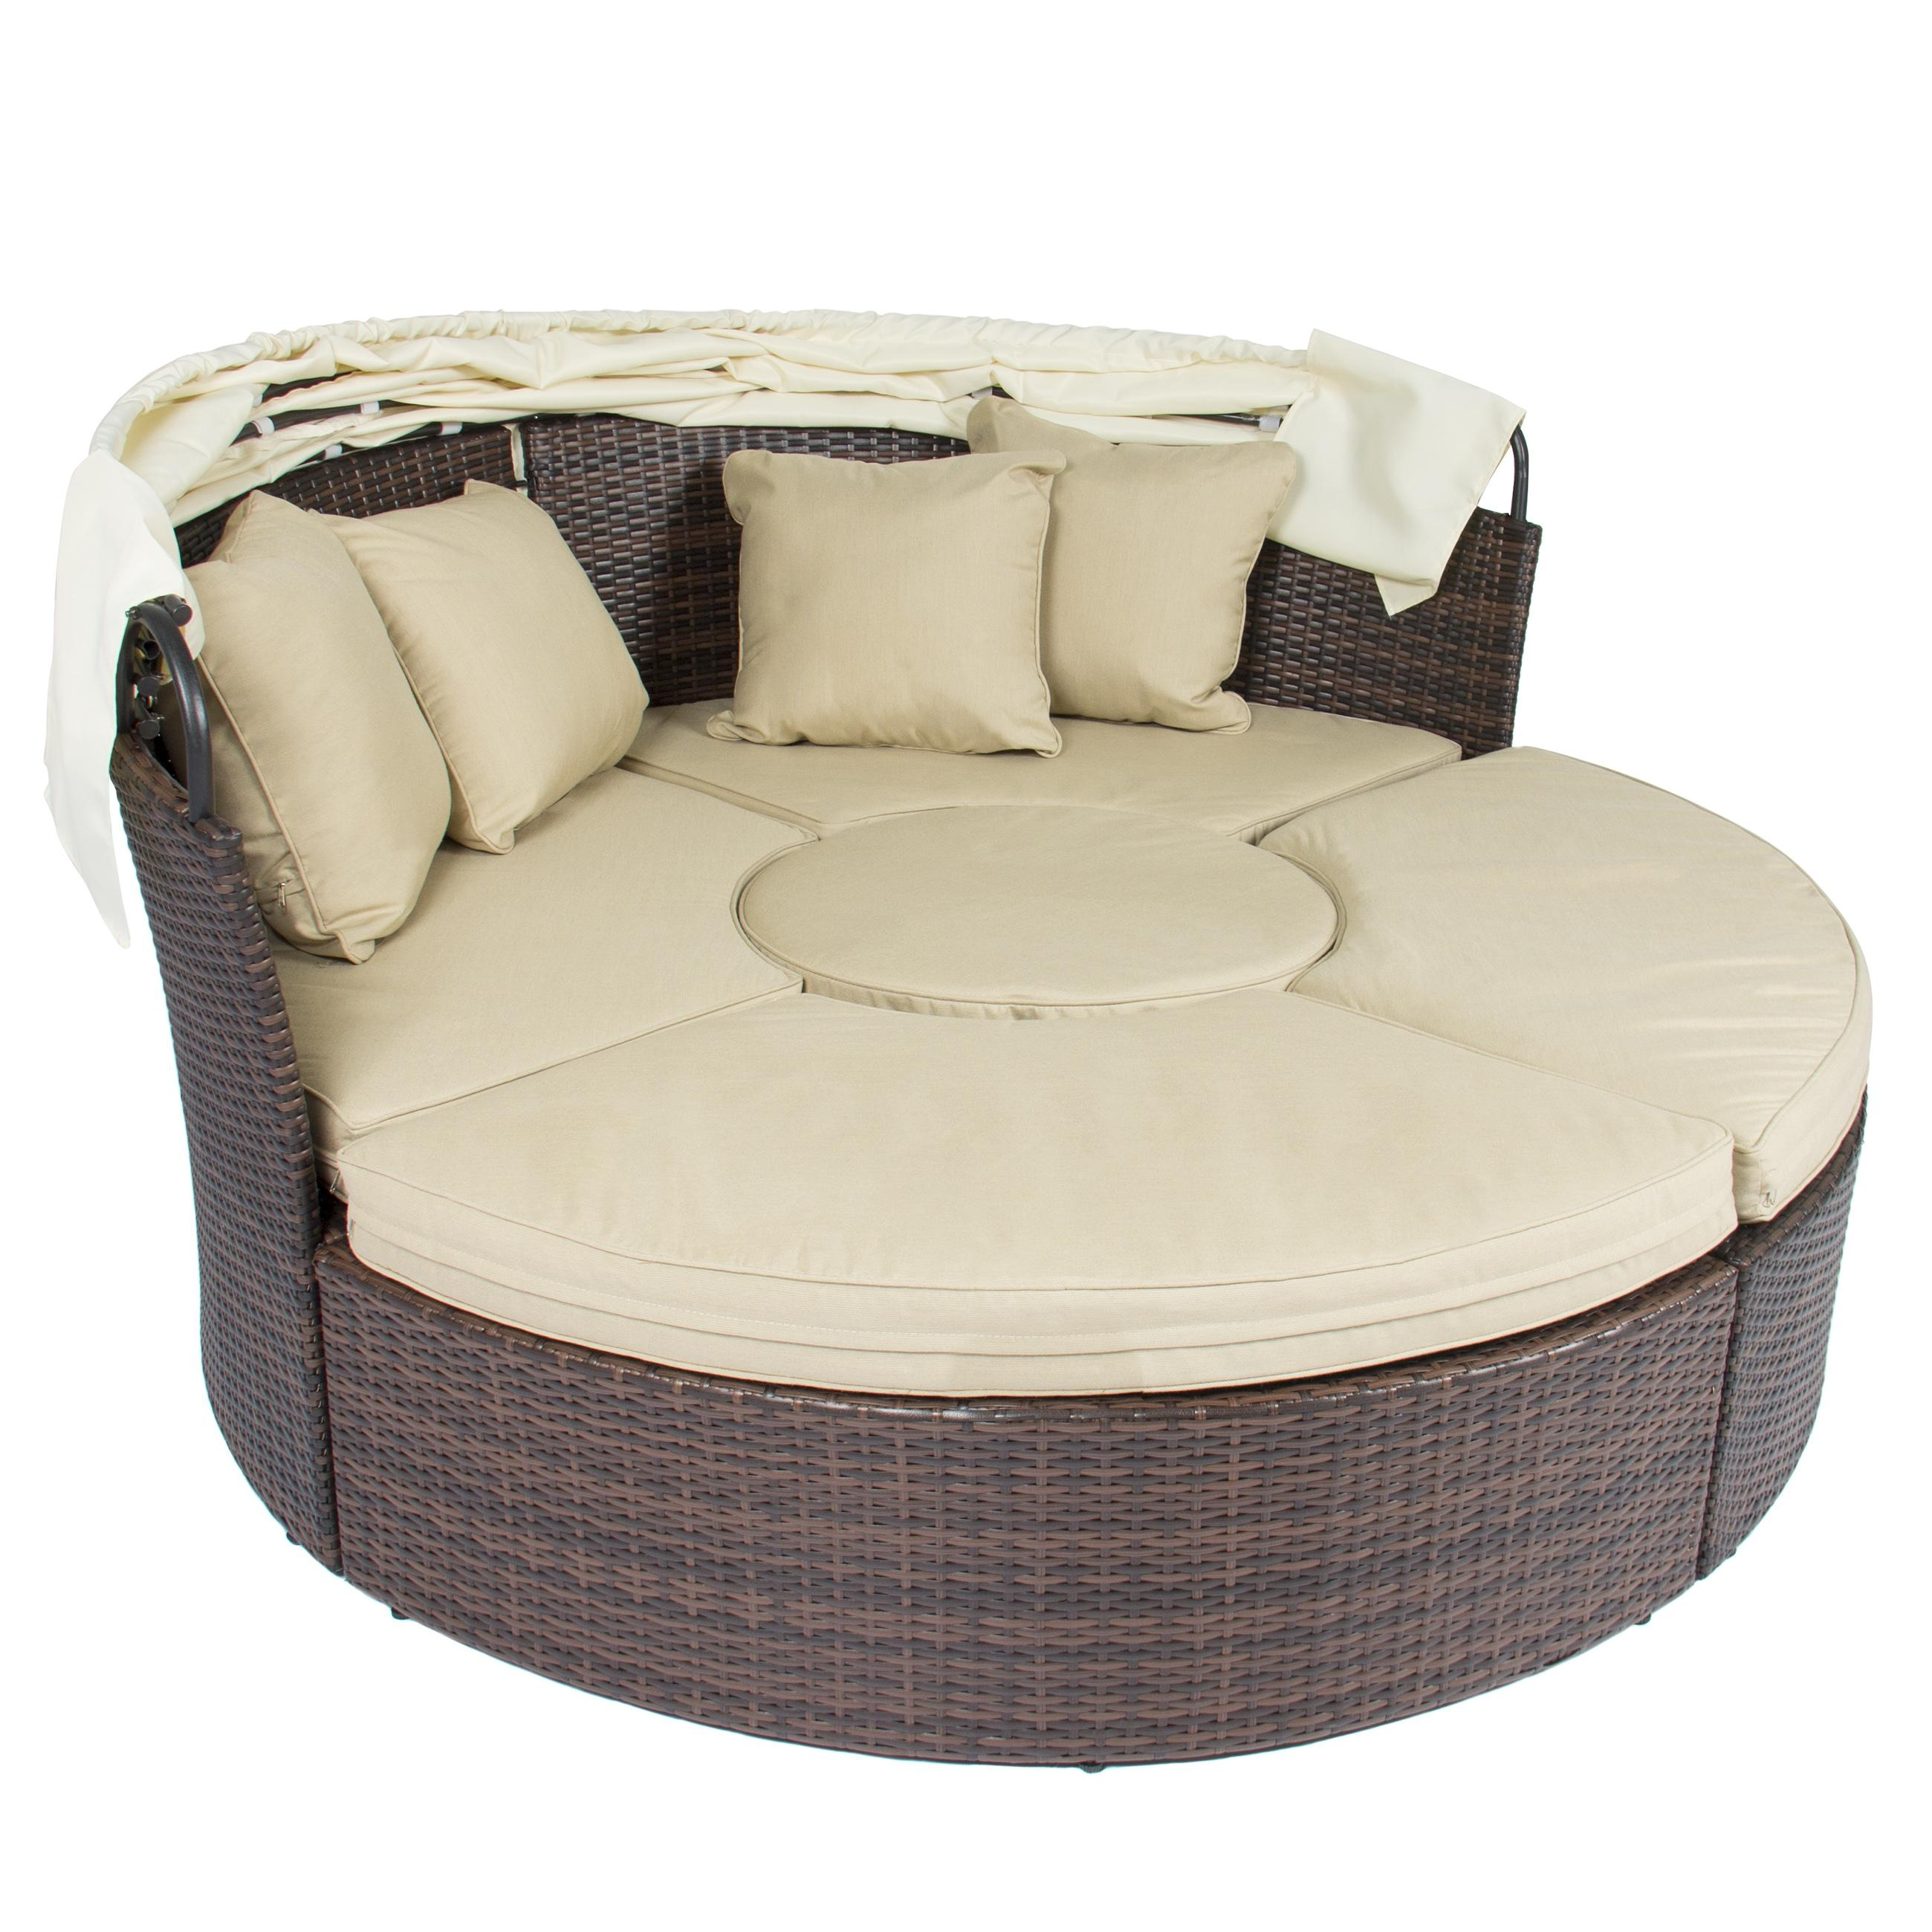 Outdoor Patio Sofa Furniture Round Retractable Canopy Daybed Brown For Circular Sofa Chairs (View 5 of 20)